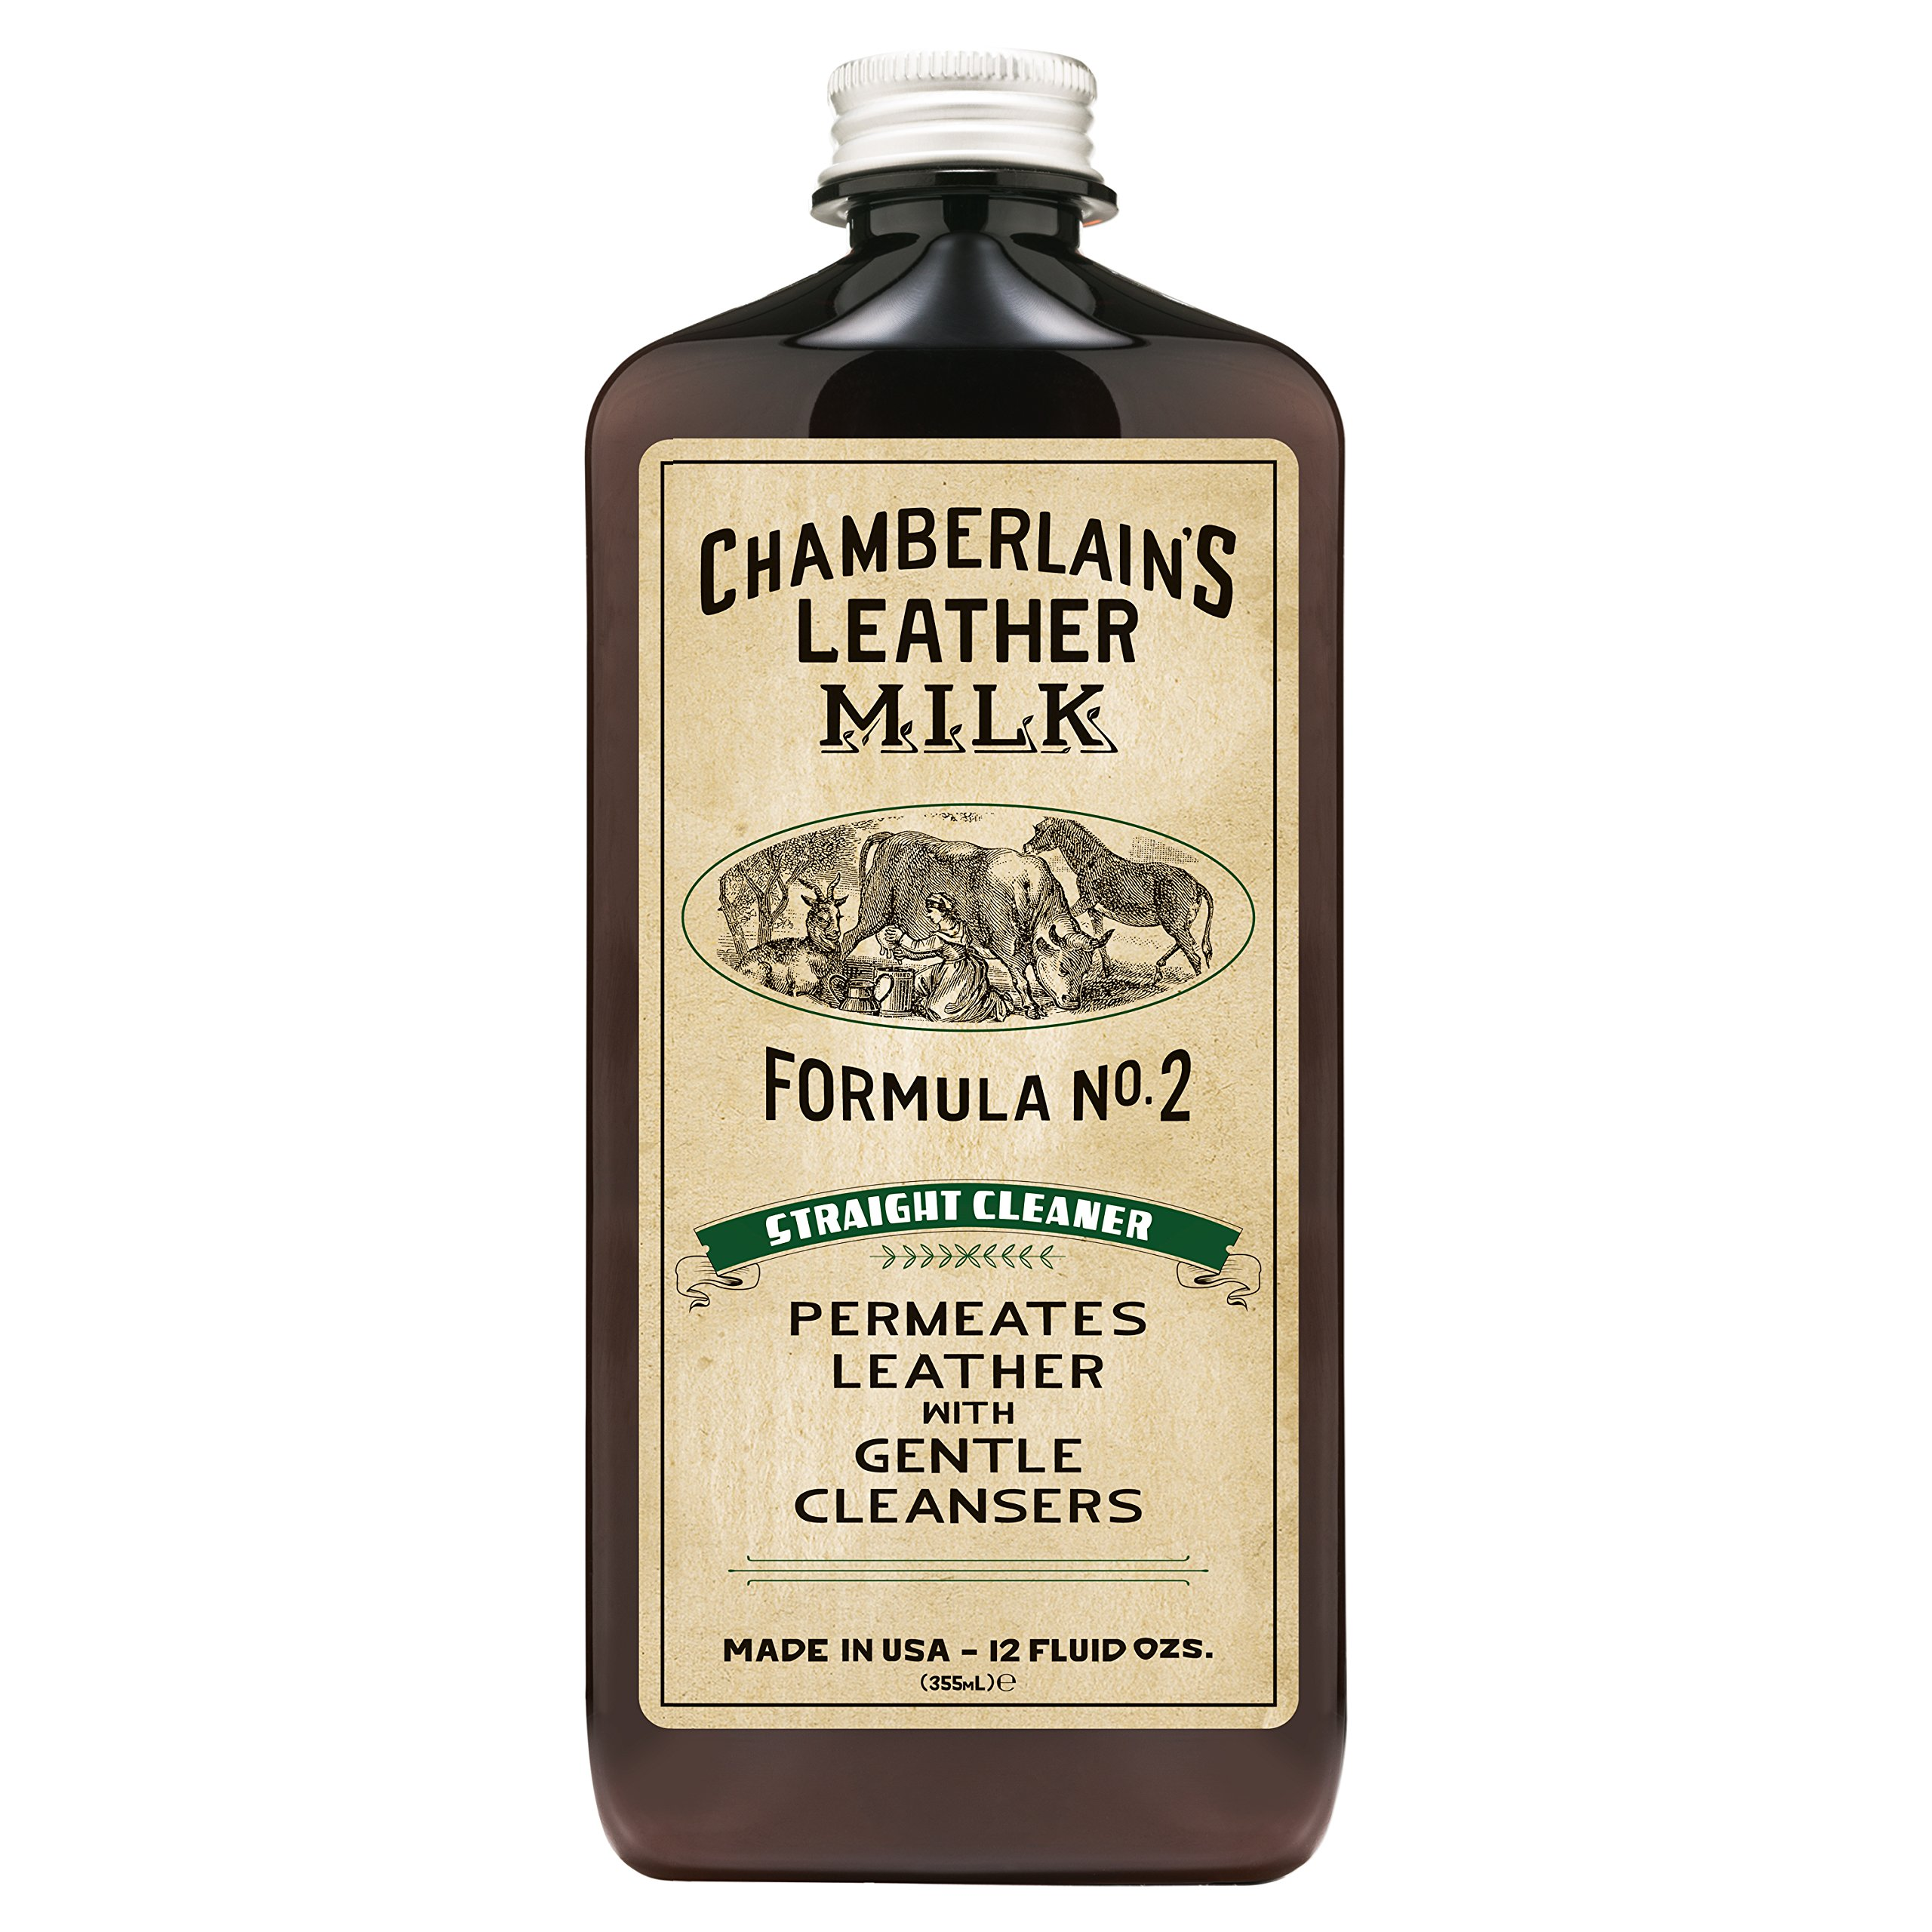 Leather Milk Leather Cleaner - Straight Cleaner No. 2 - All Natural, Non-Toxic Deep Cleaner Made in The USA. 2 Sizes. Includes Premium Cleaning Pad!